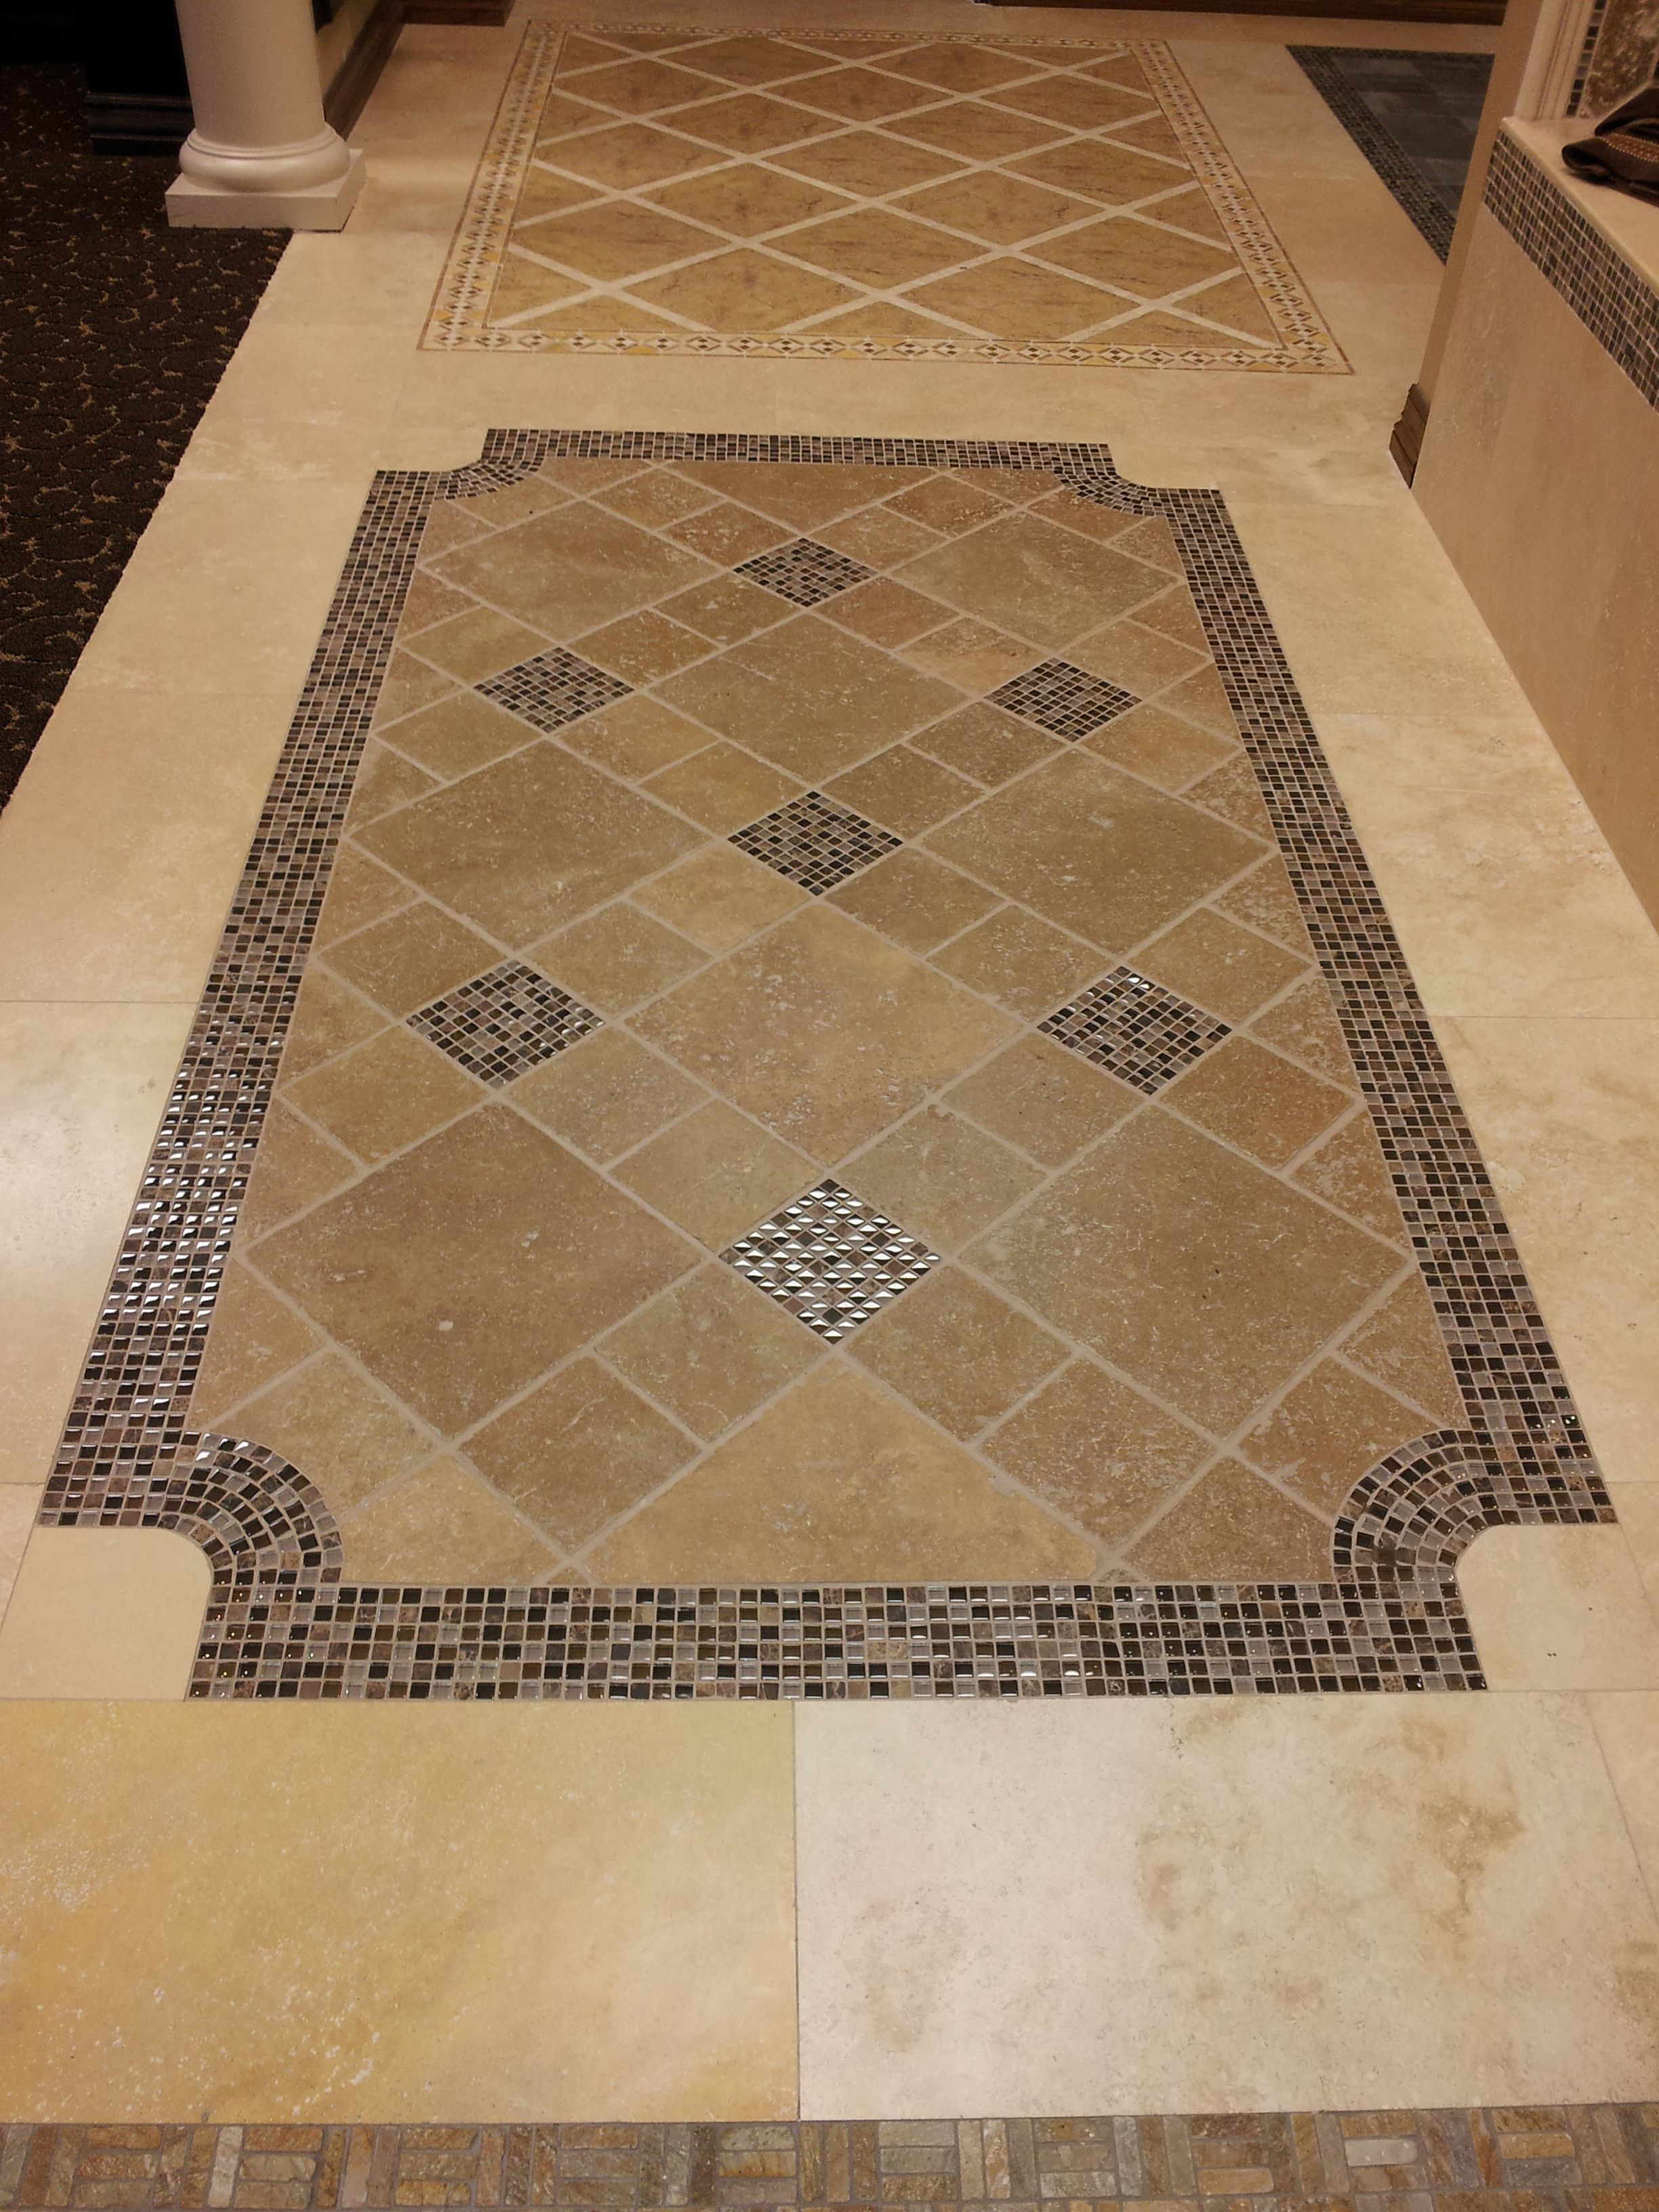 tile floor design idea - Floor Tile Design Ideas